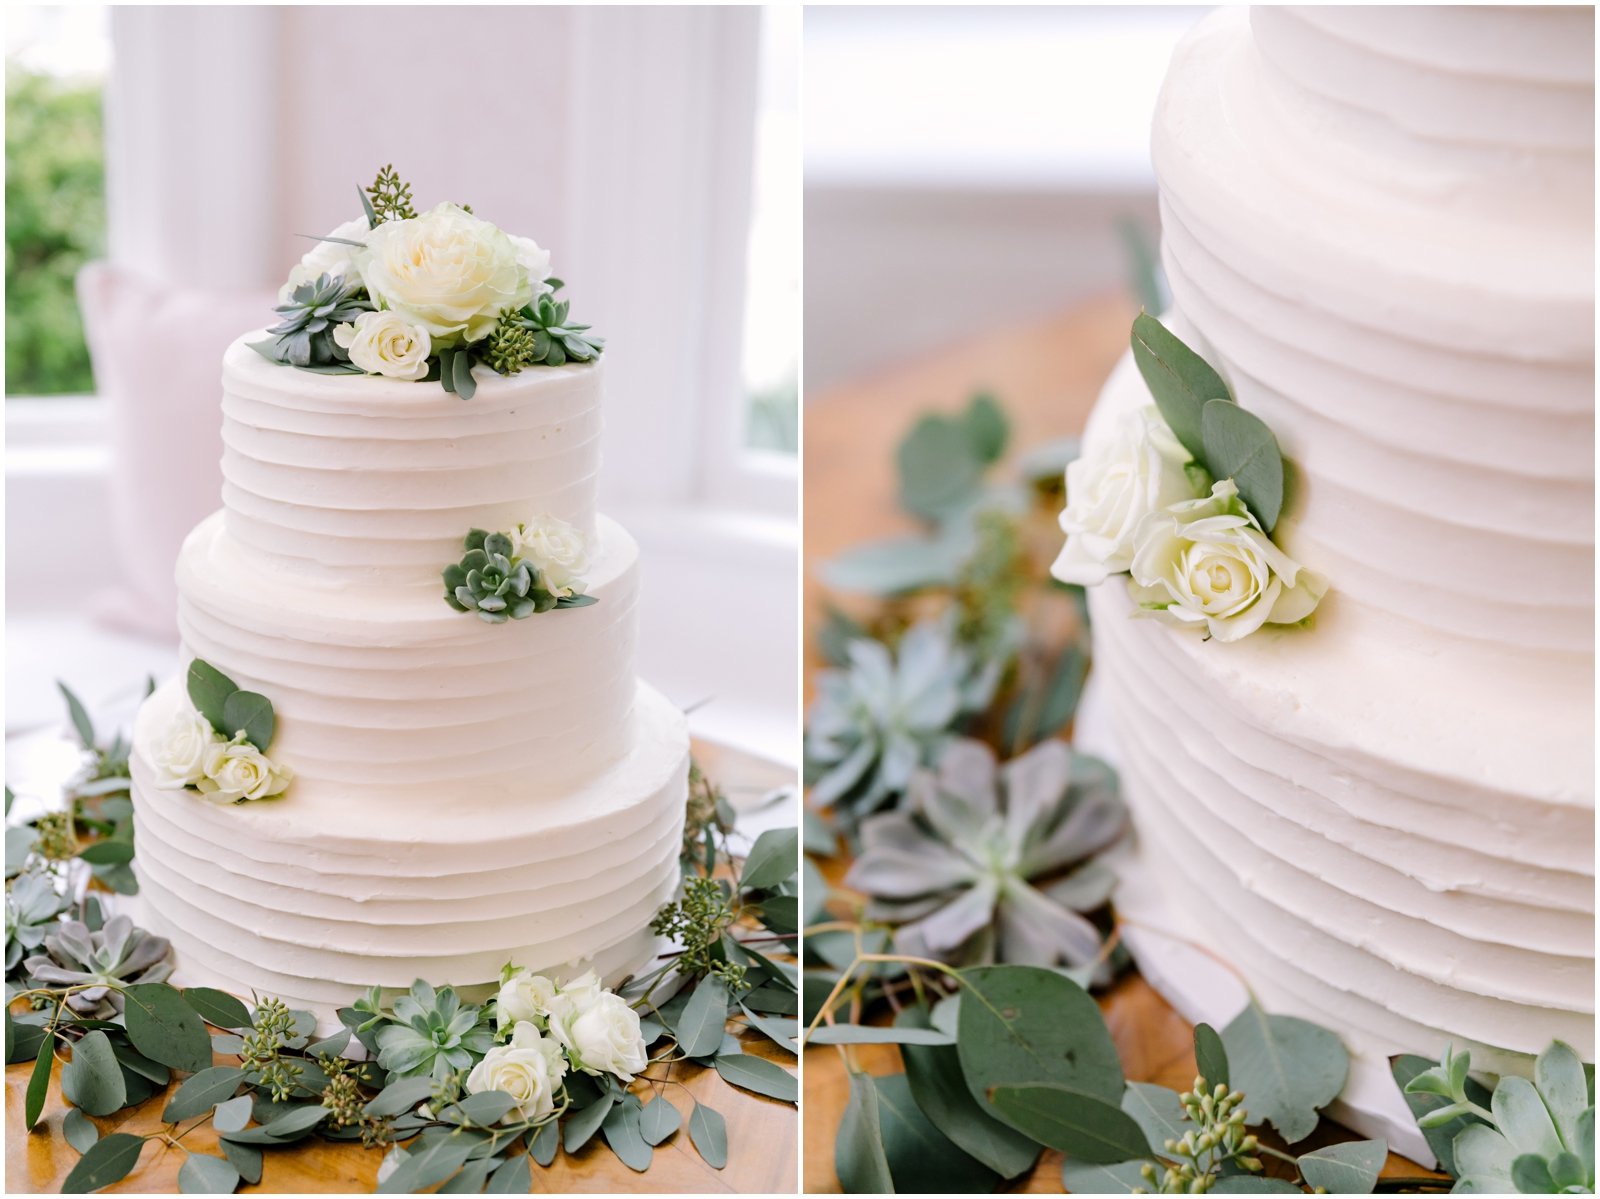 White and greenery wedding cake